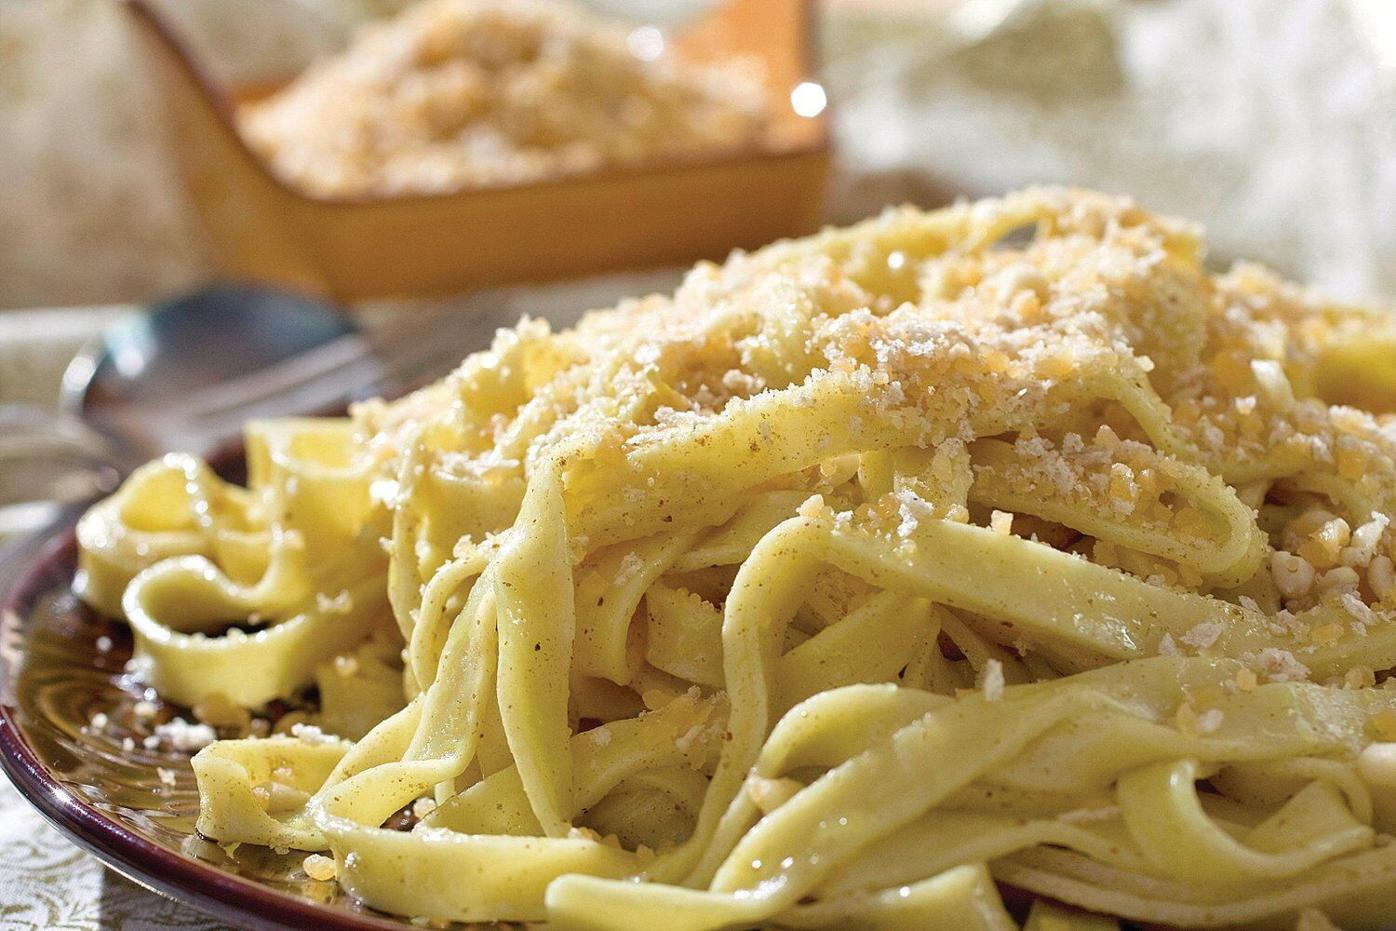 Quarantine cooking: Dress up that pantry pasta with delicious sauces